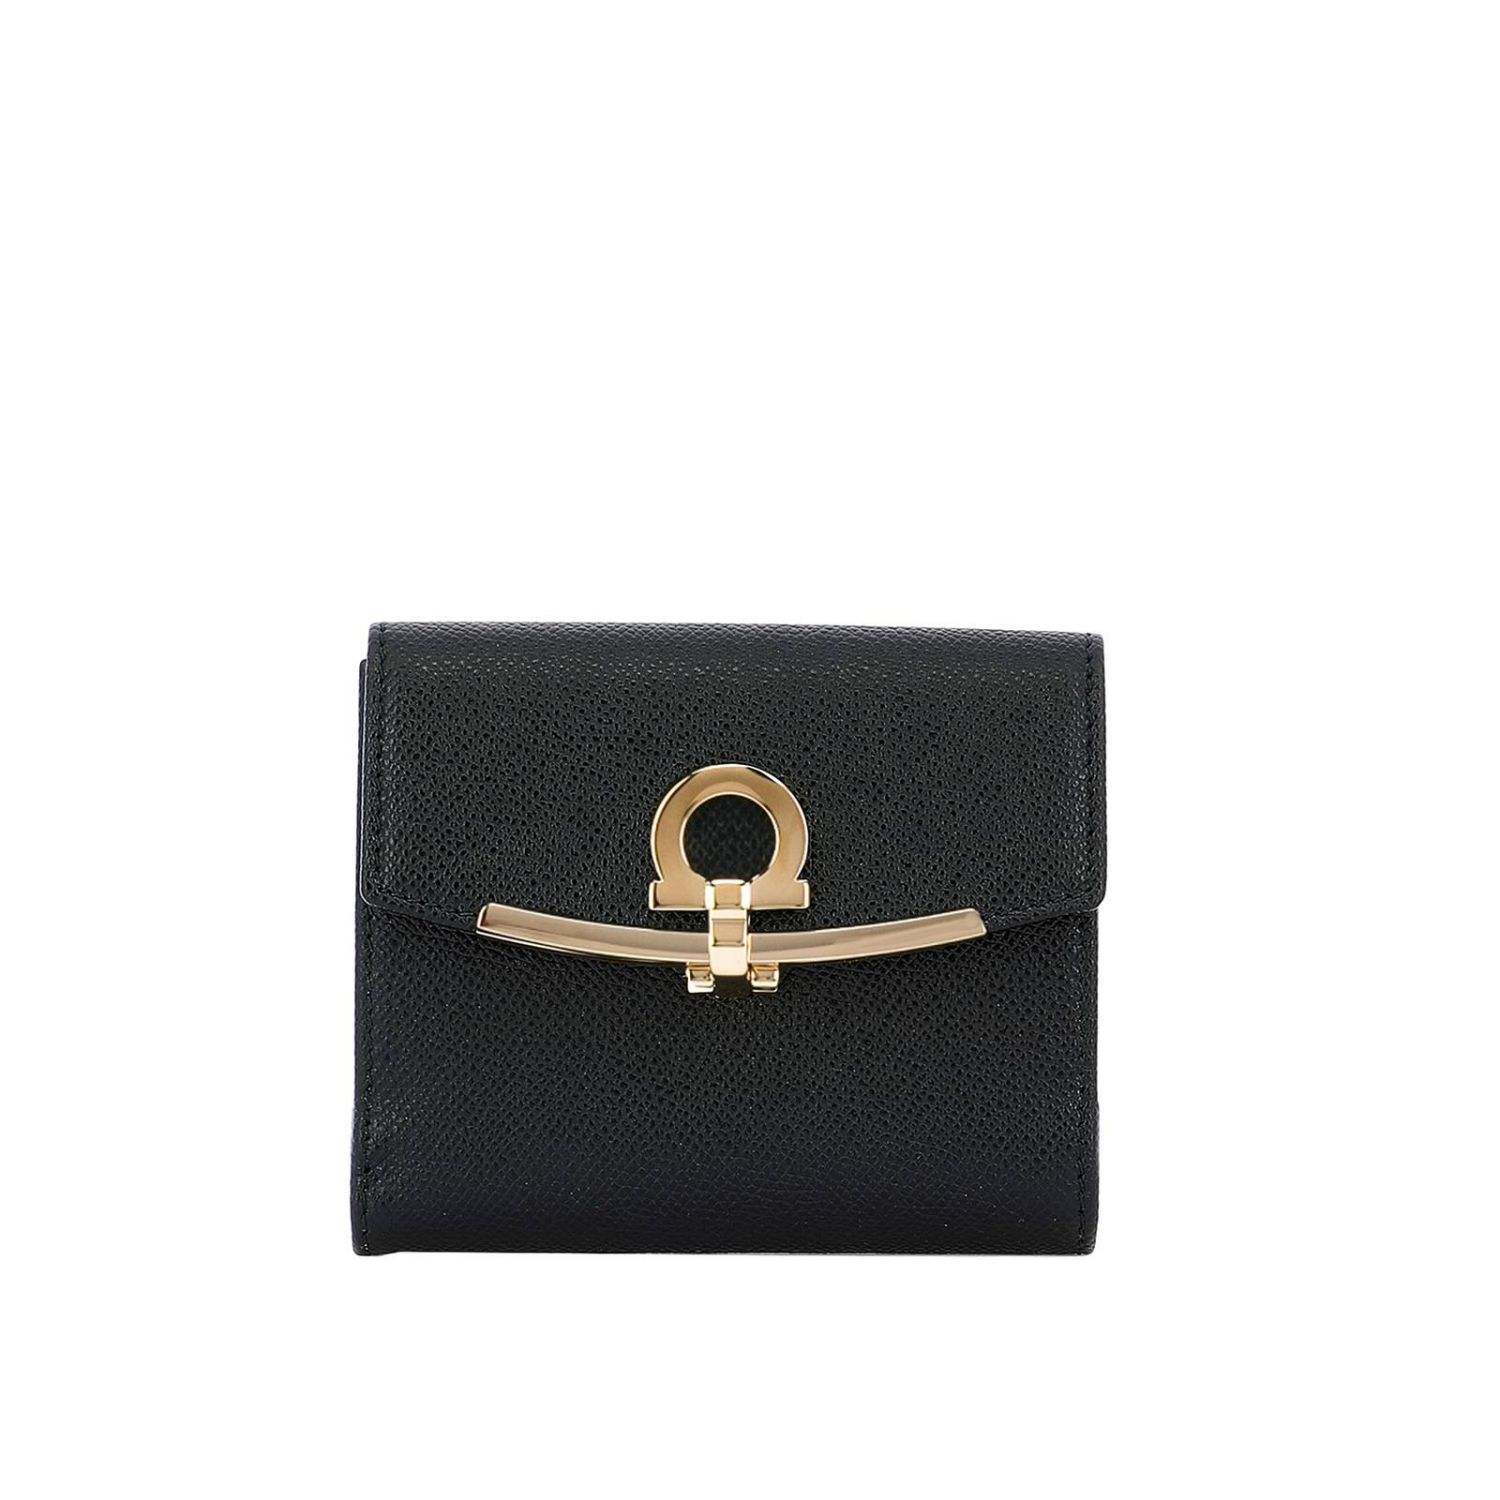 Wallet women Salvatore Ferragamo black 1